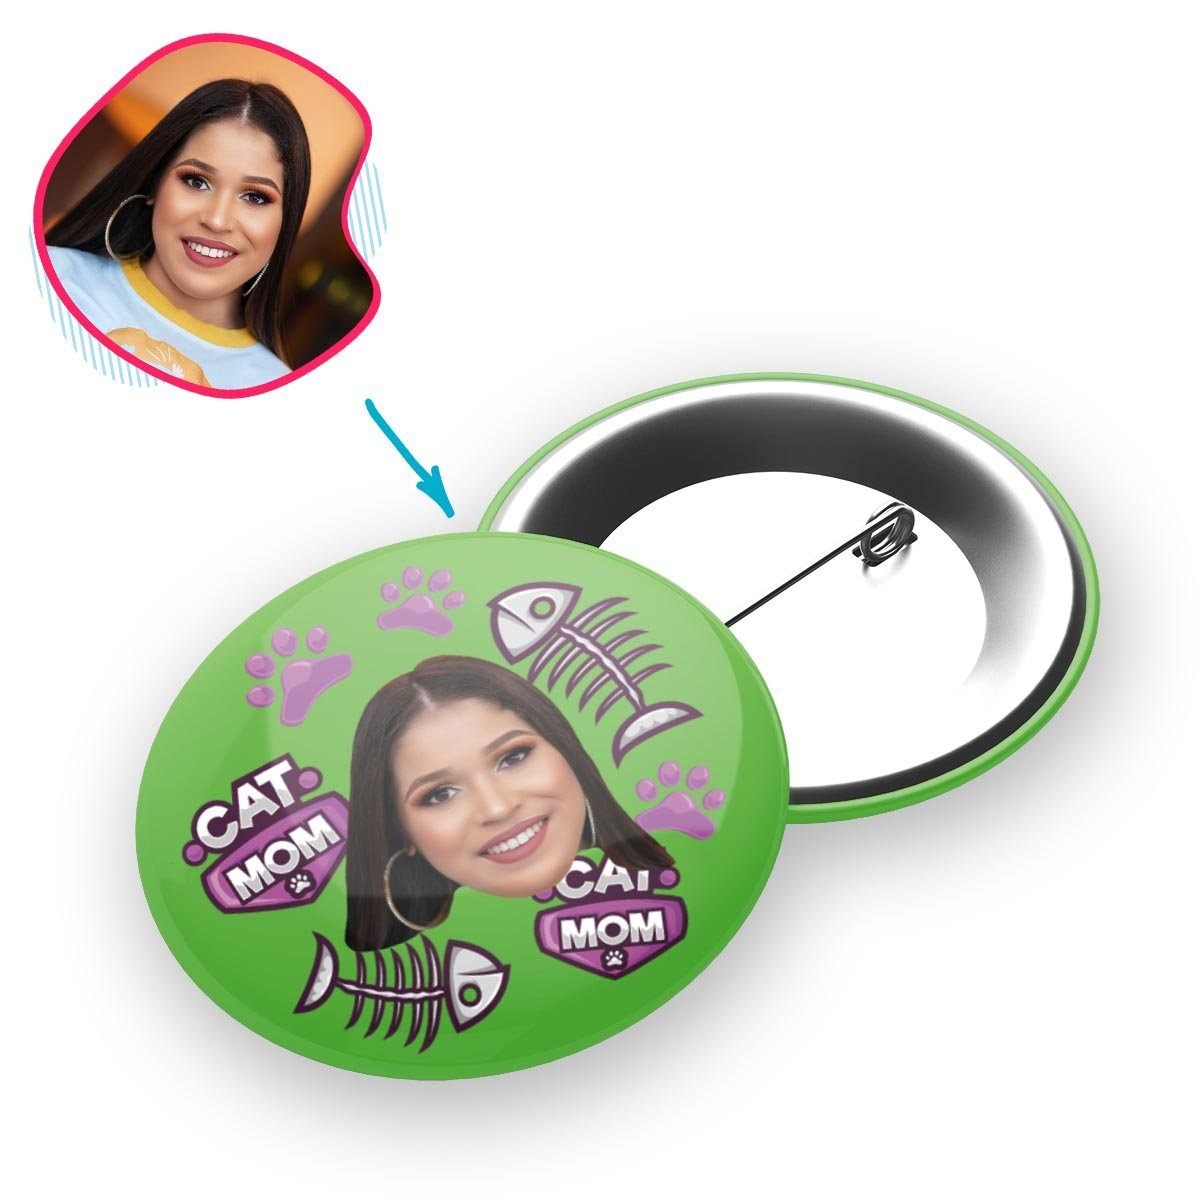 green Cat Mom pin personalized with photo of face printed on it